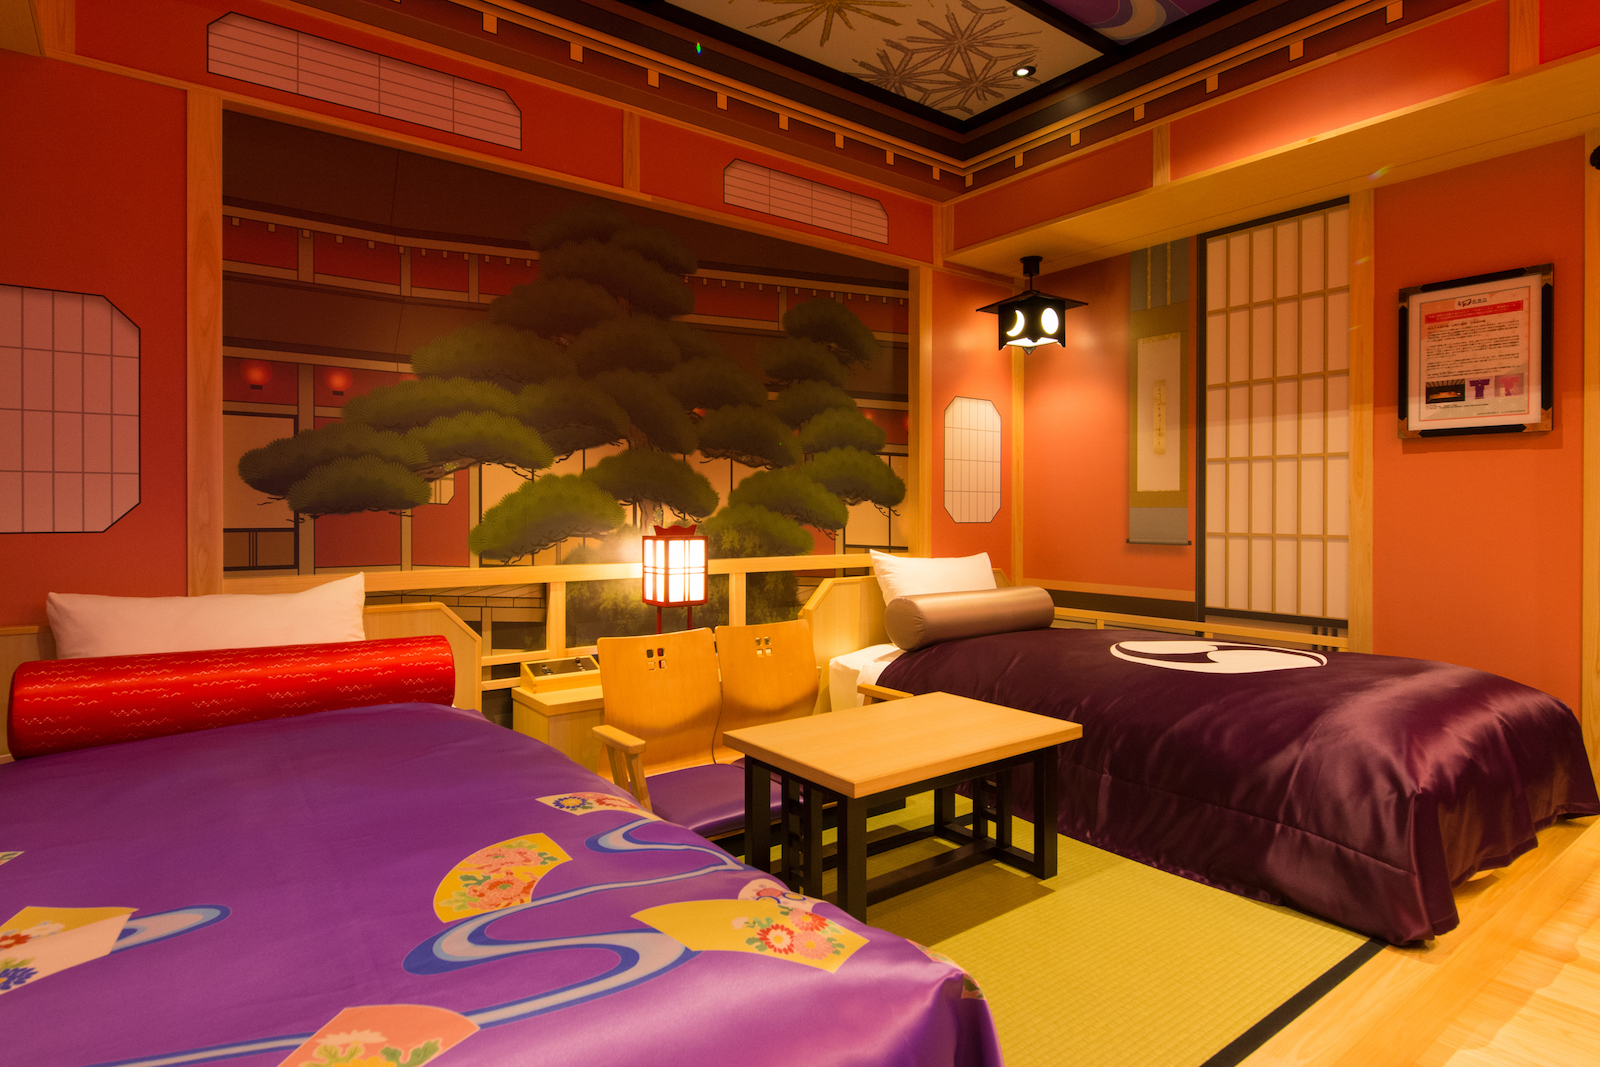 Hotel gracery kyoto sanjo south opens japan today for Hotels kyoto